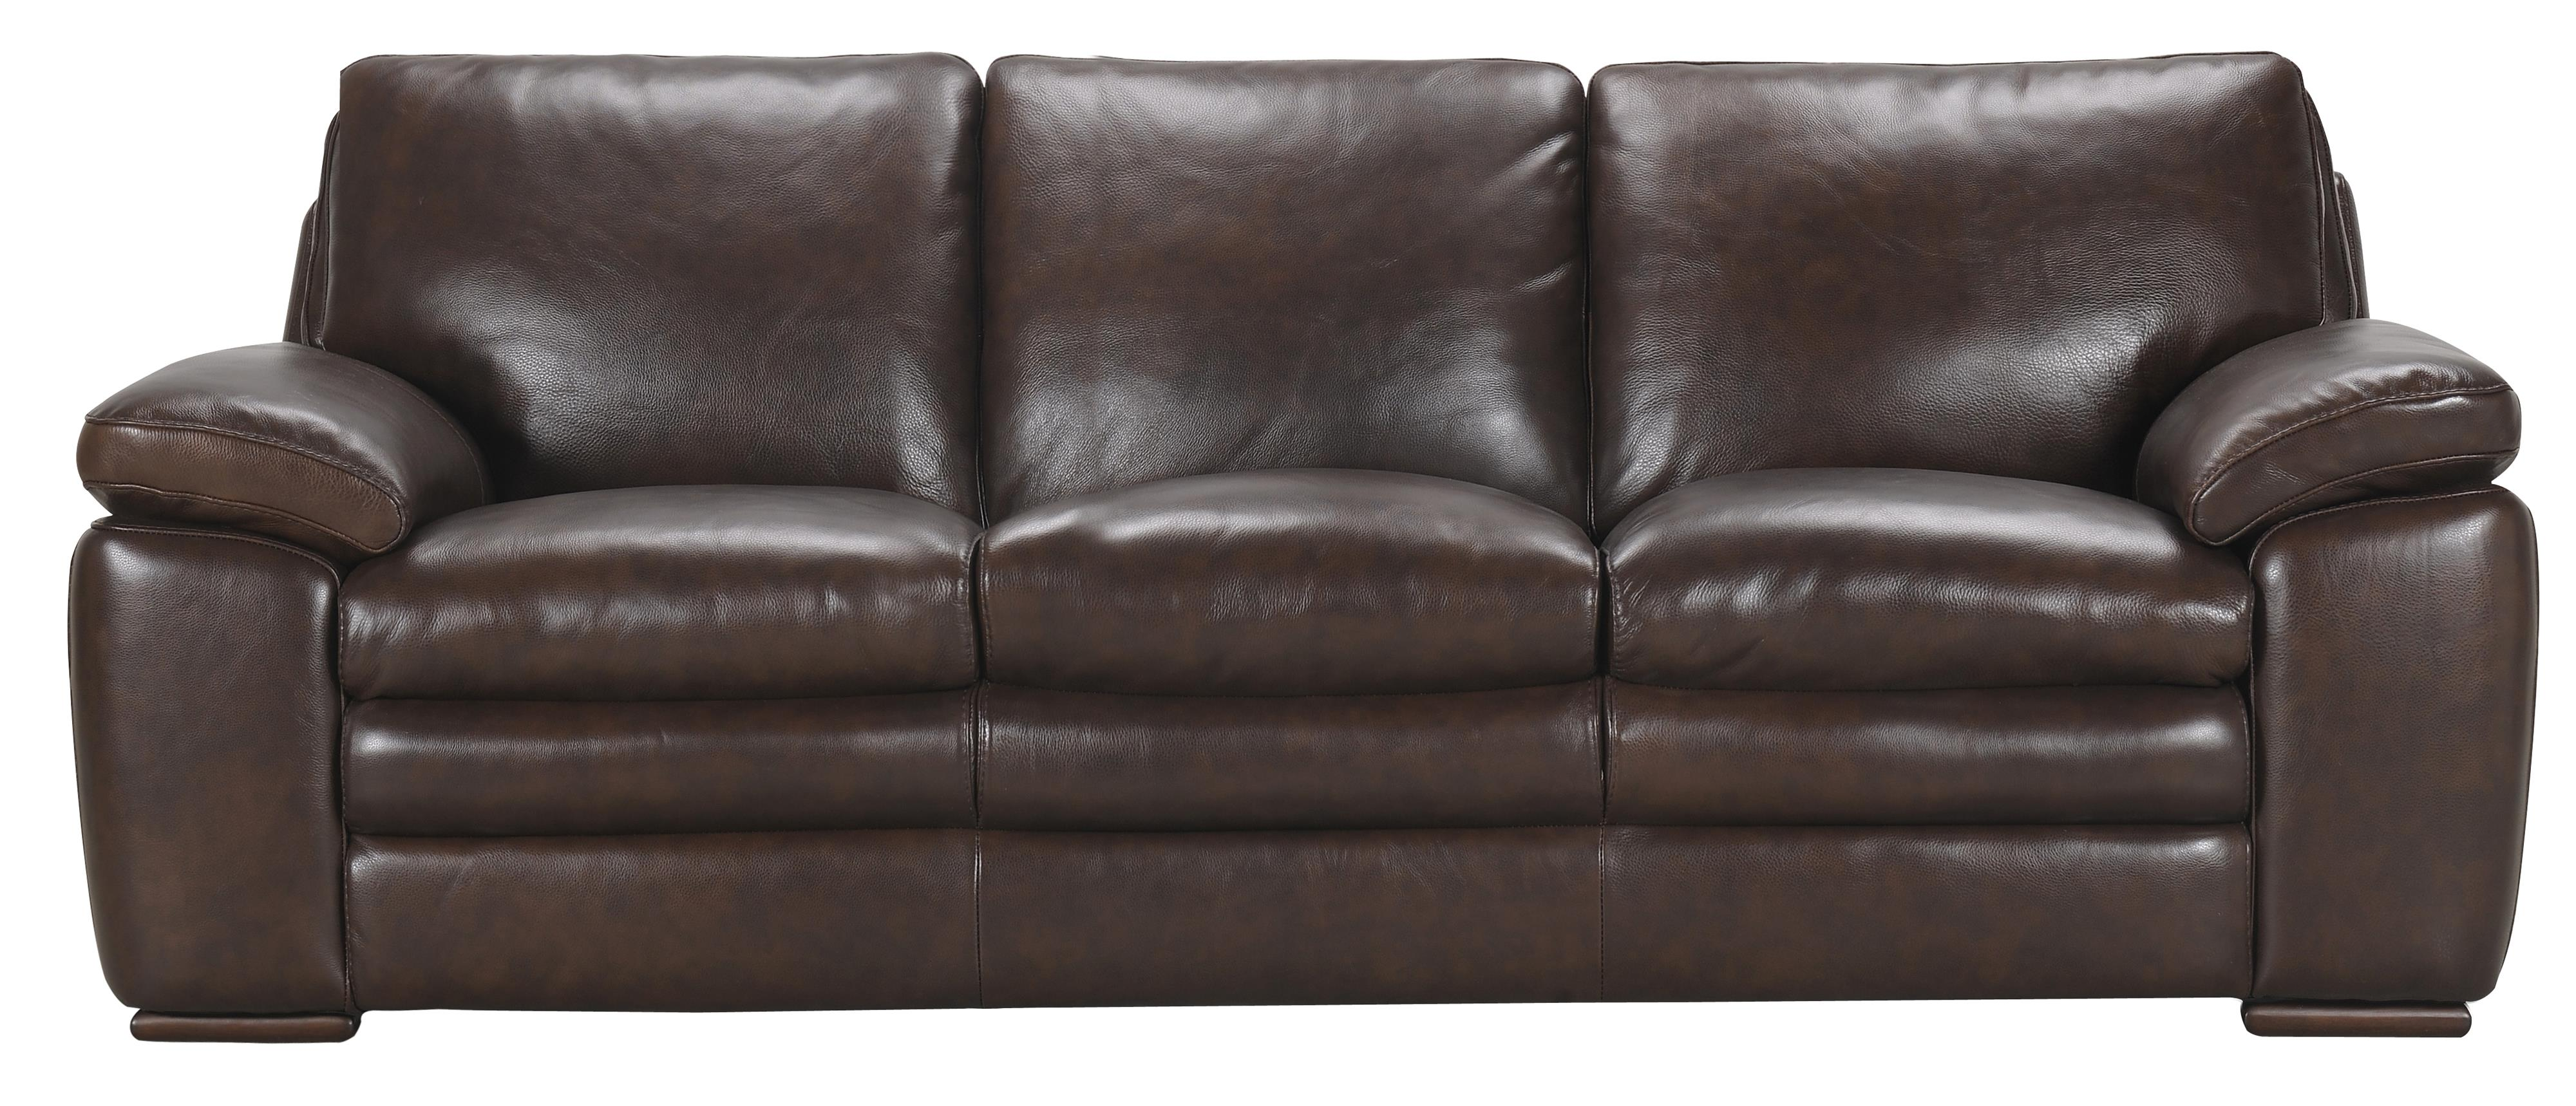 3620 Sofa by Violino at Furniture Superstore - Rochester, MN